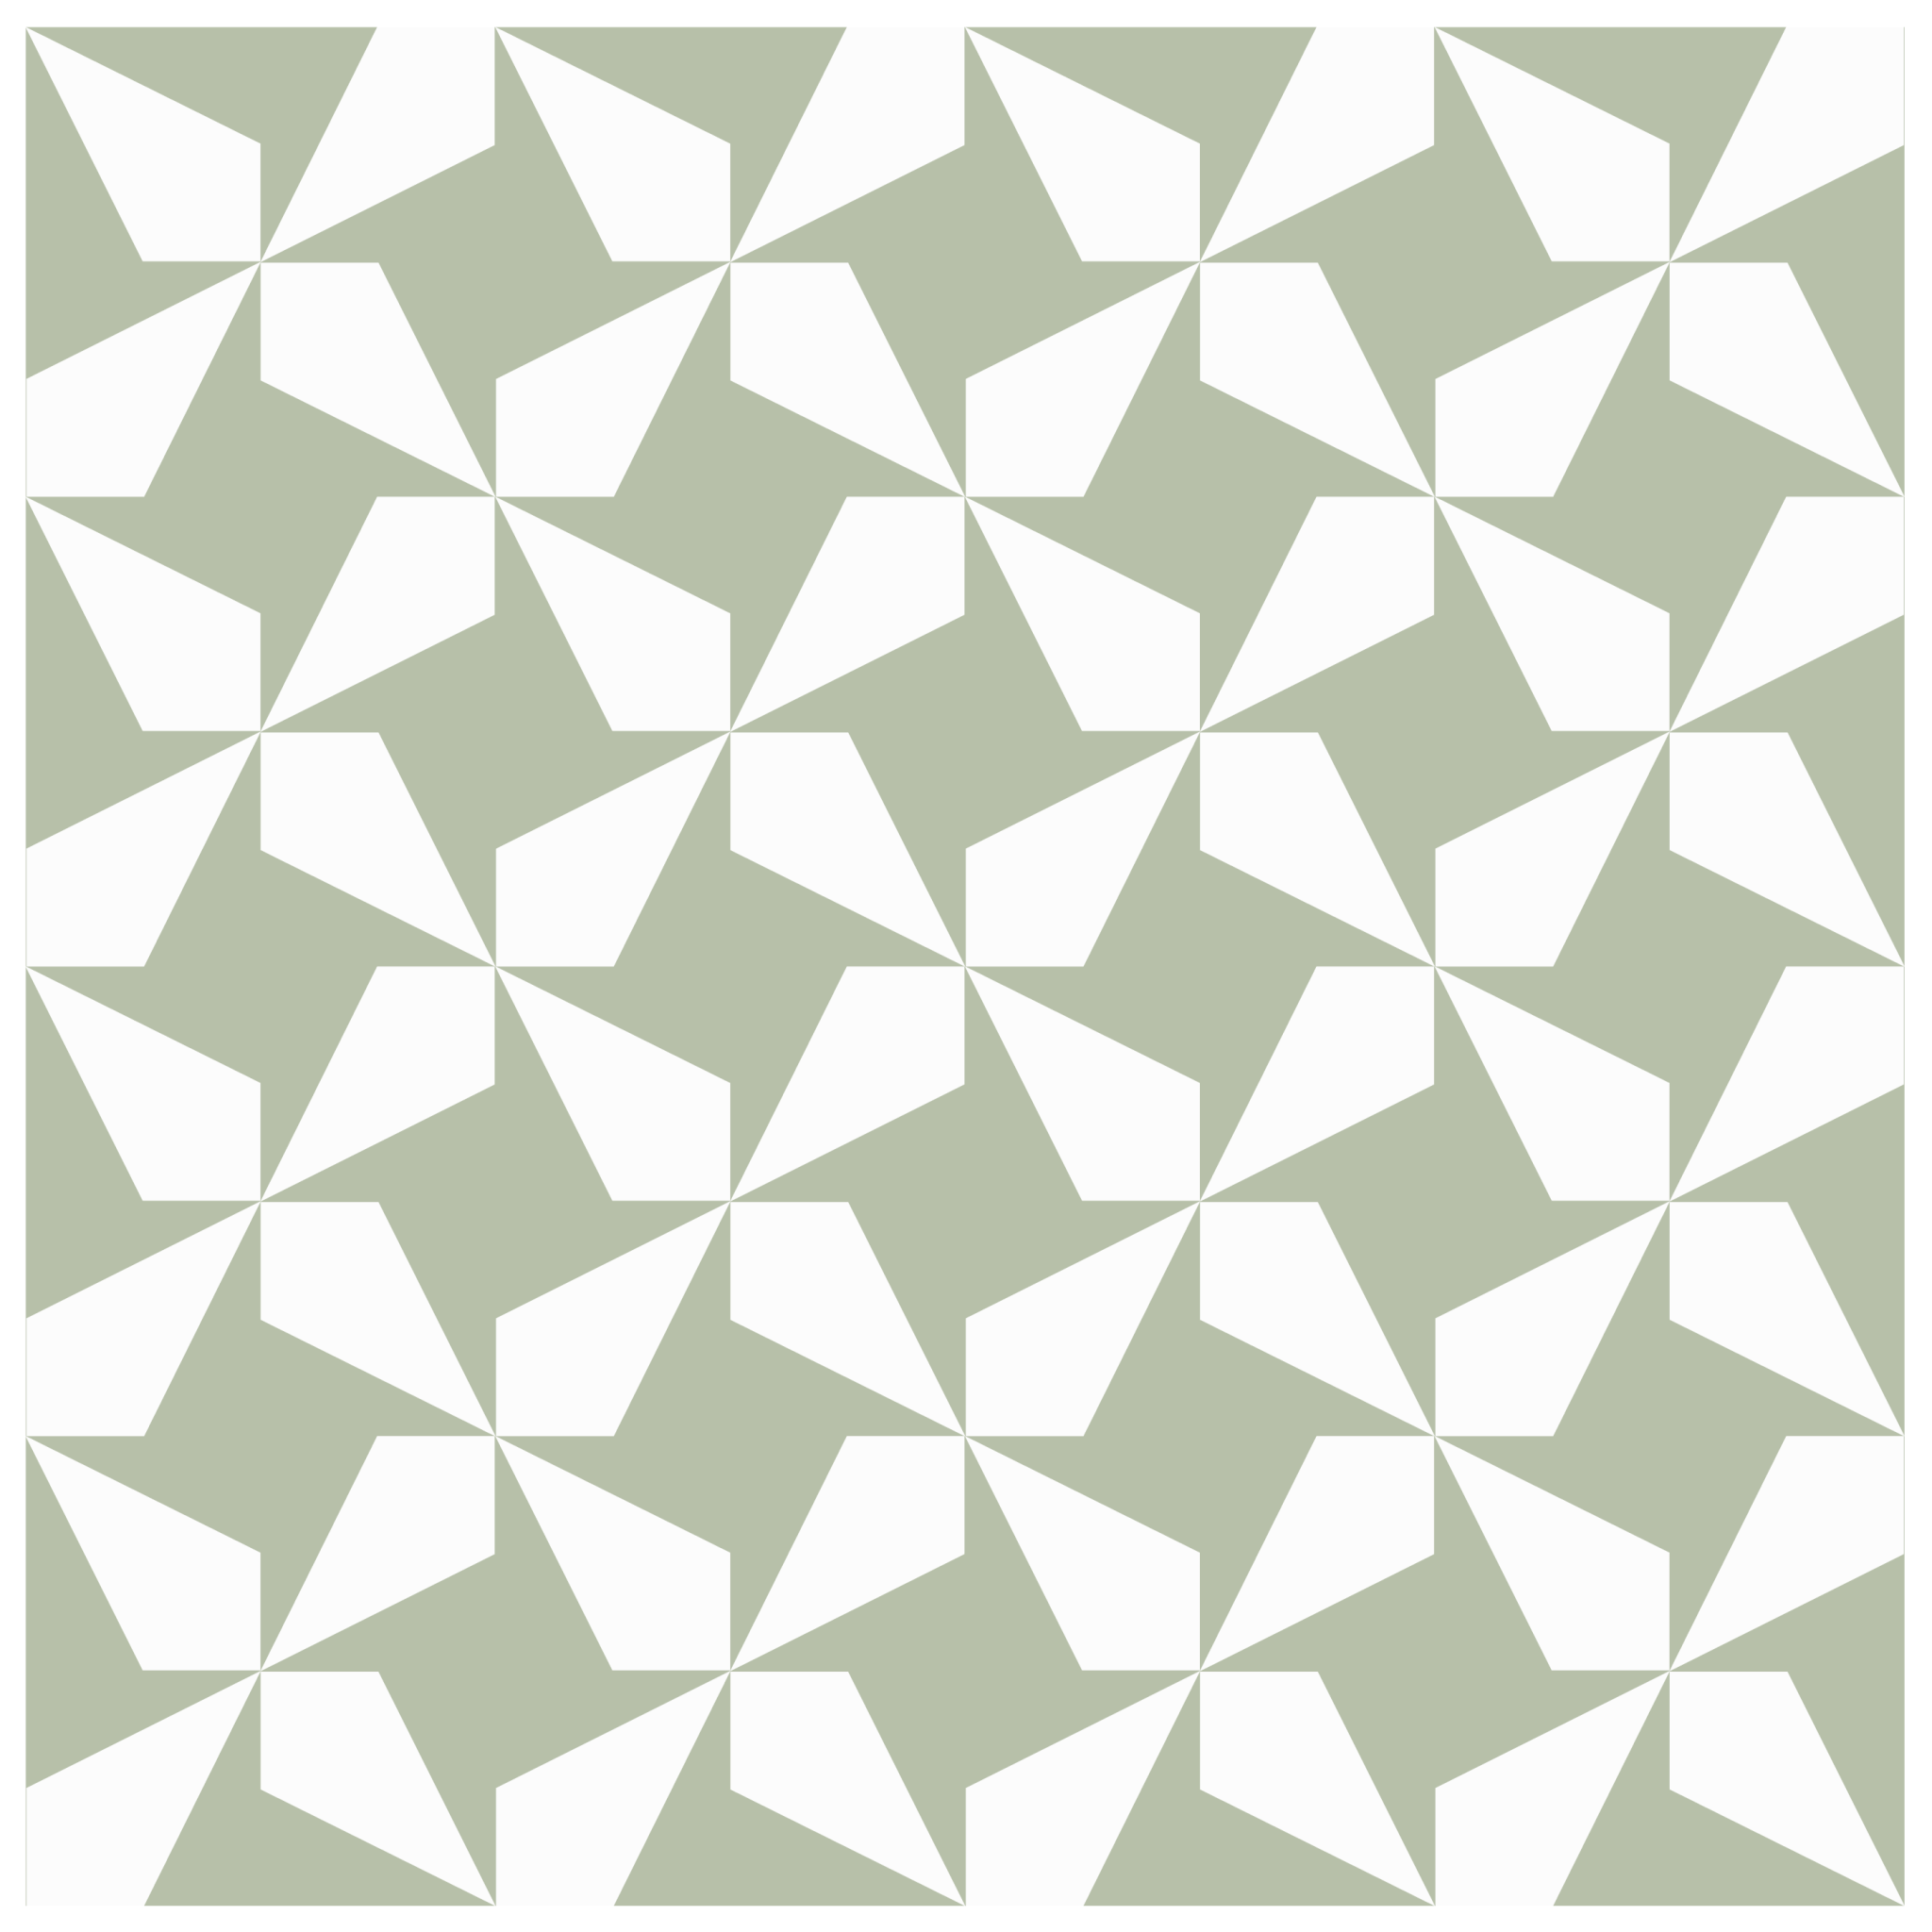 an illustration of a possible arrangment of corner beam quilt block units